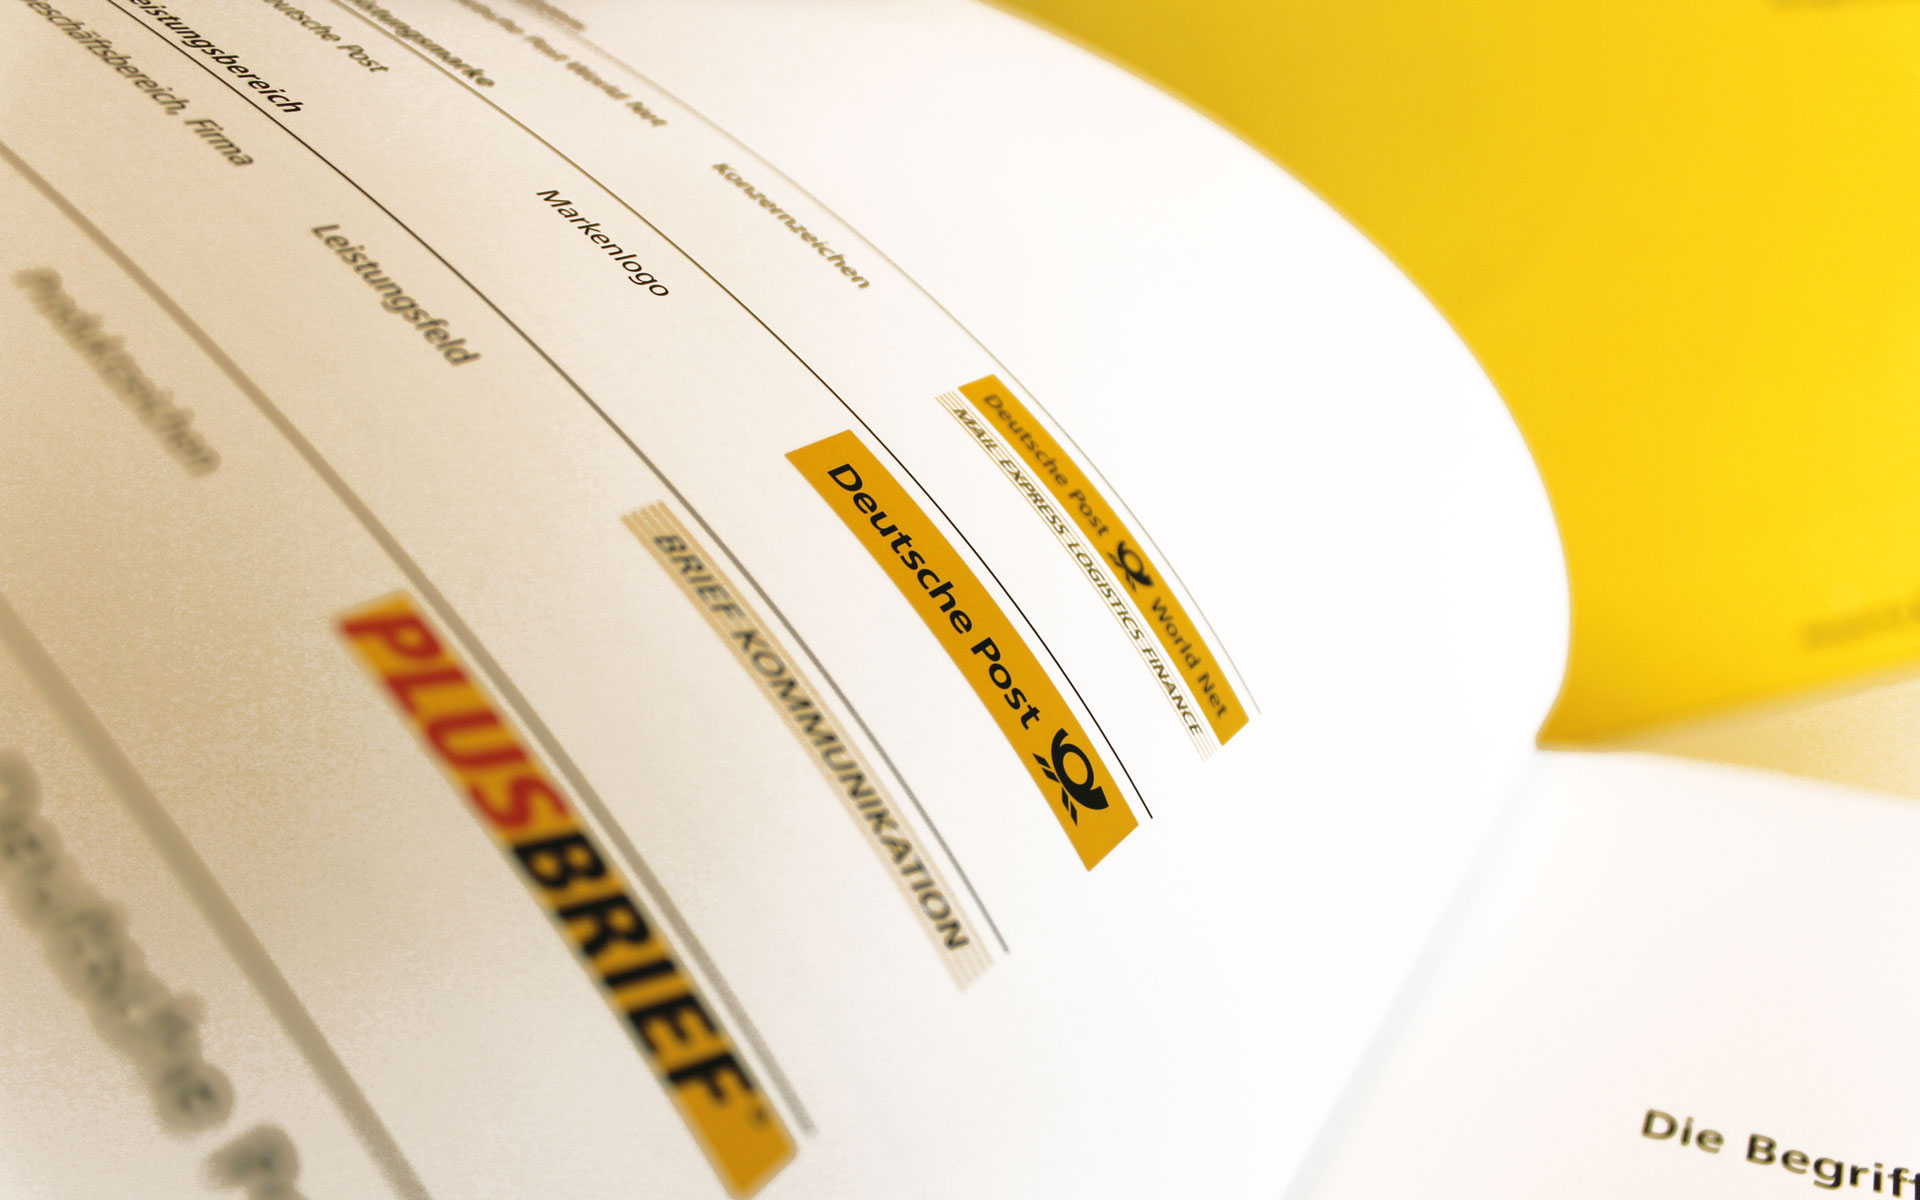 Deutsche Post AG / DHL Corporate Design,  CD-Manual, Markenarchitektur